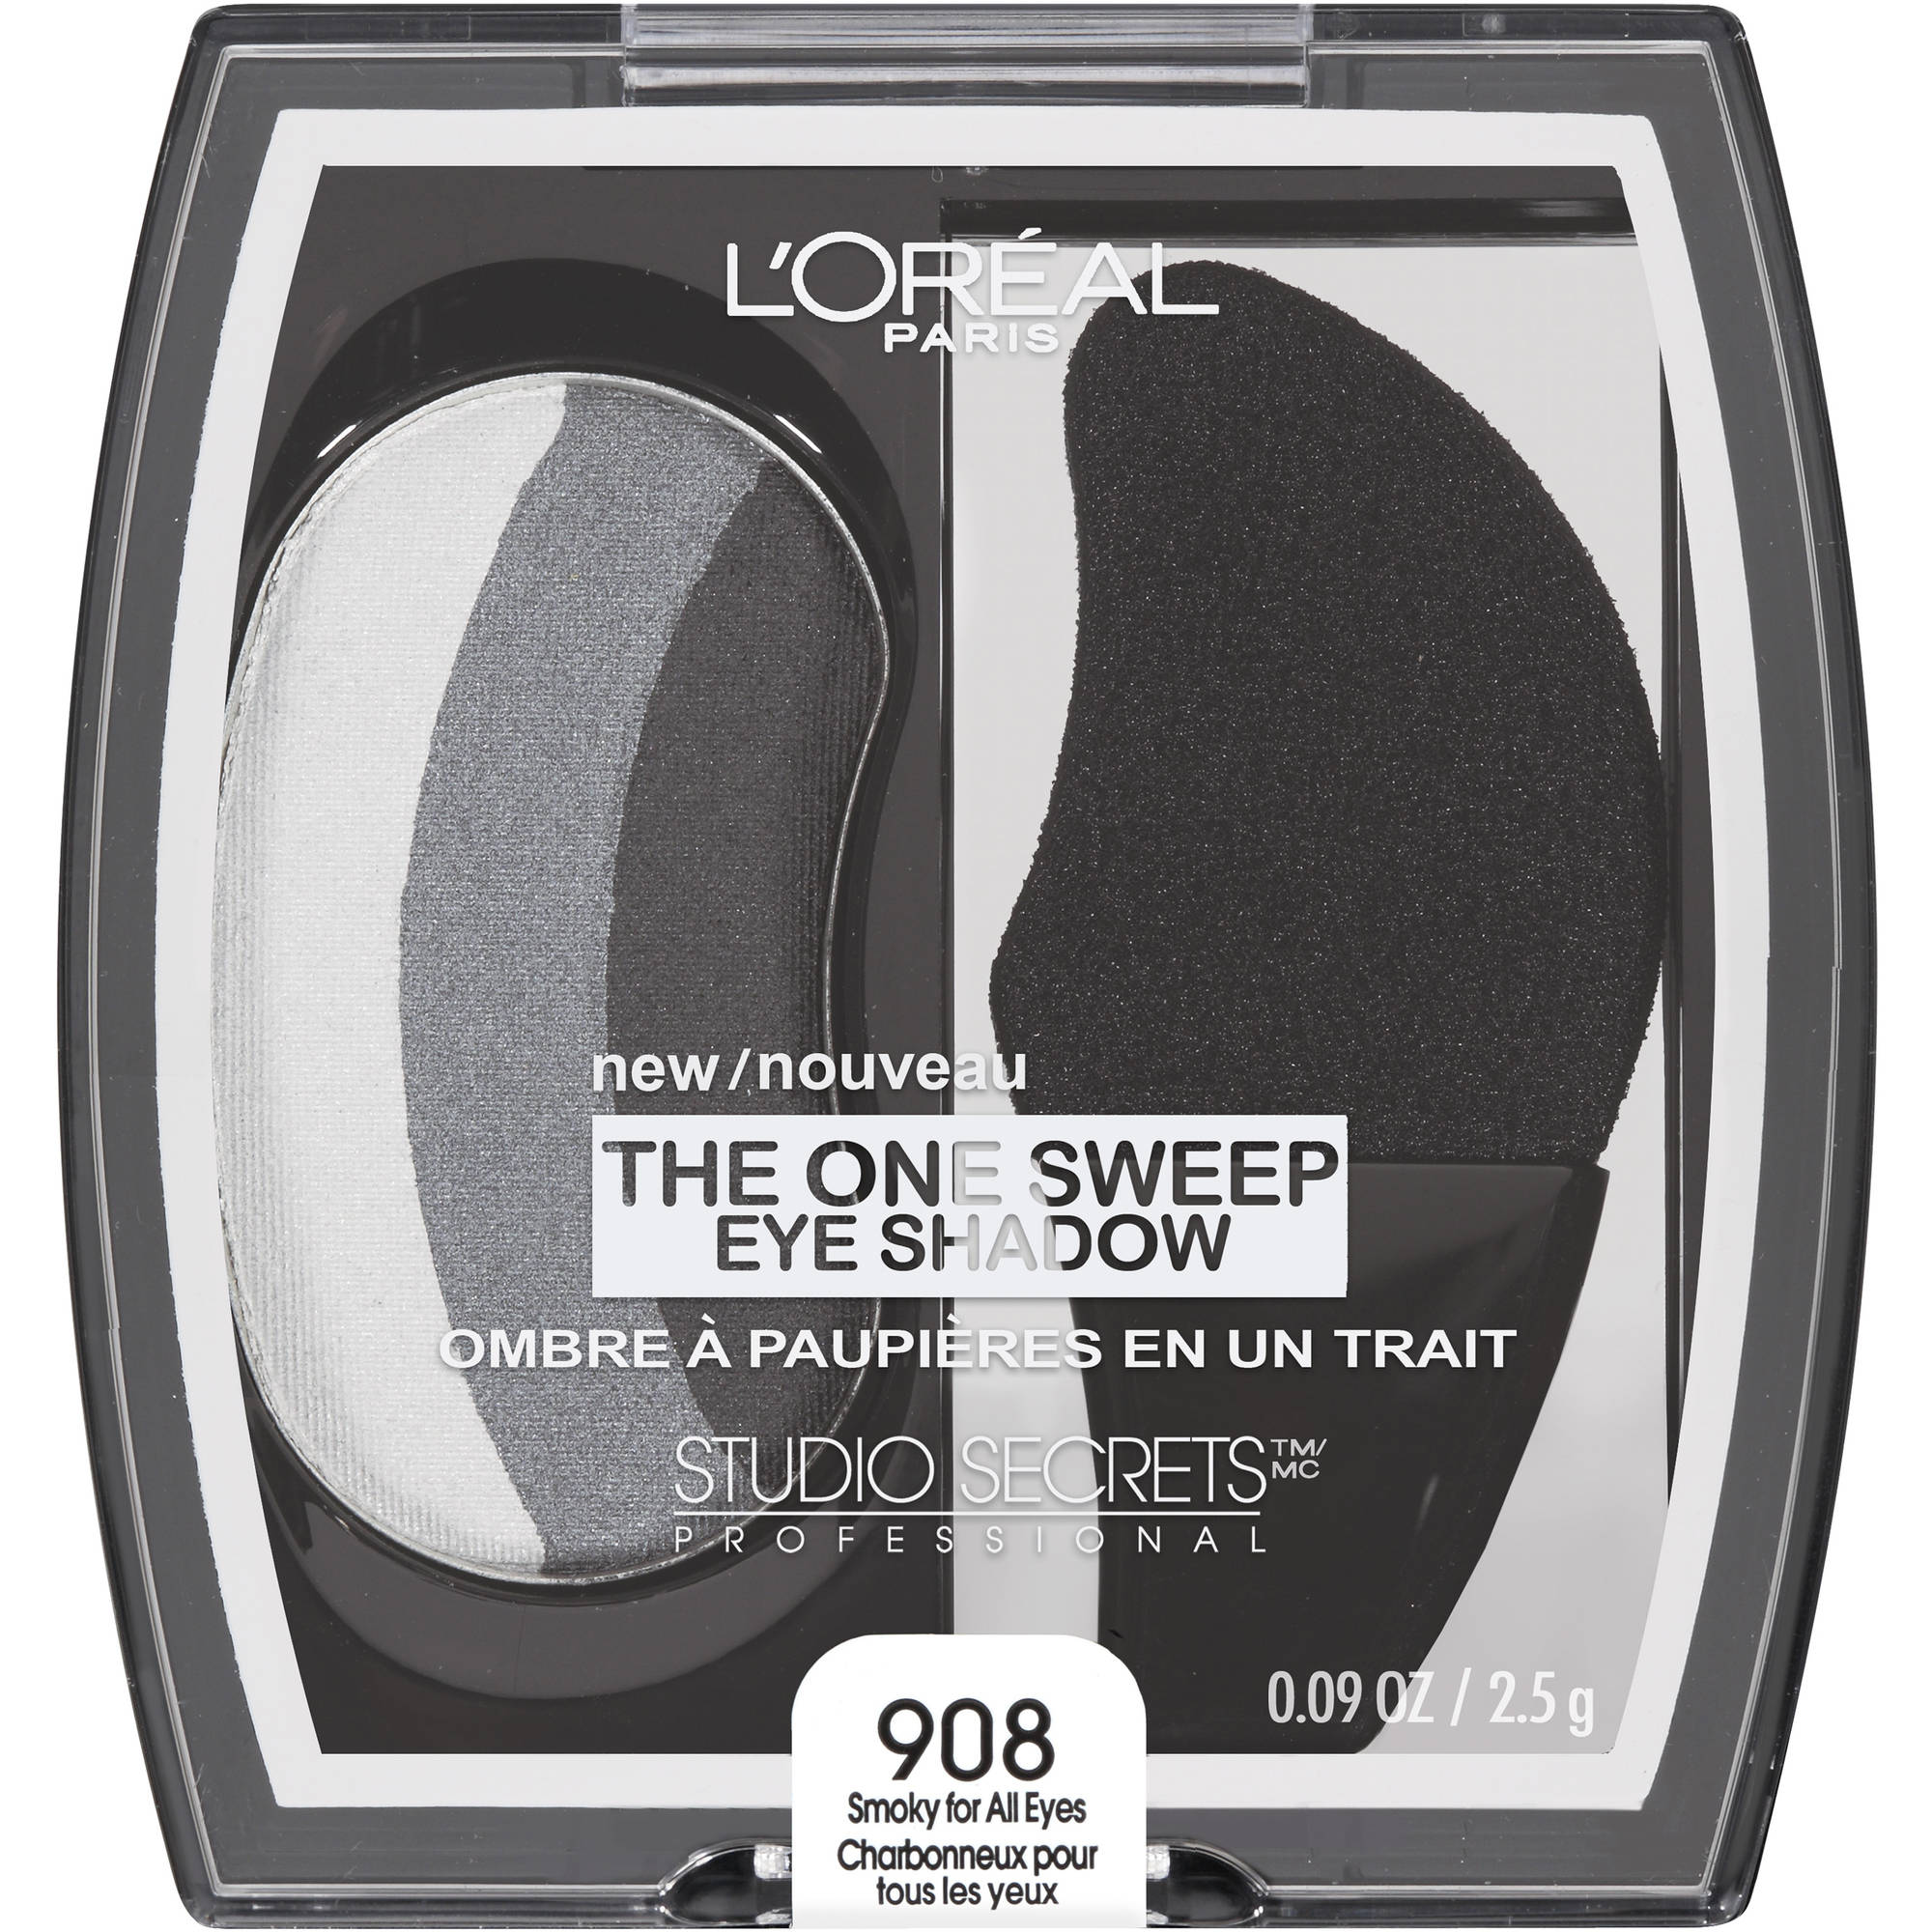 L'Oreal Paris Studio Secrets Professional One Sweep Eye Shadow, 908 Smoky For All Eyes